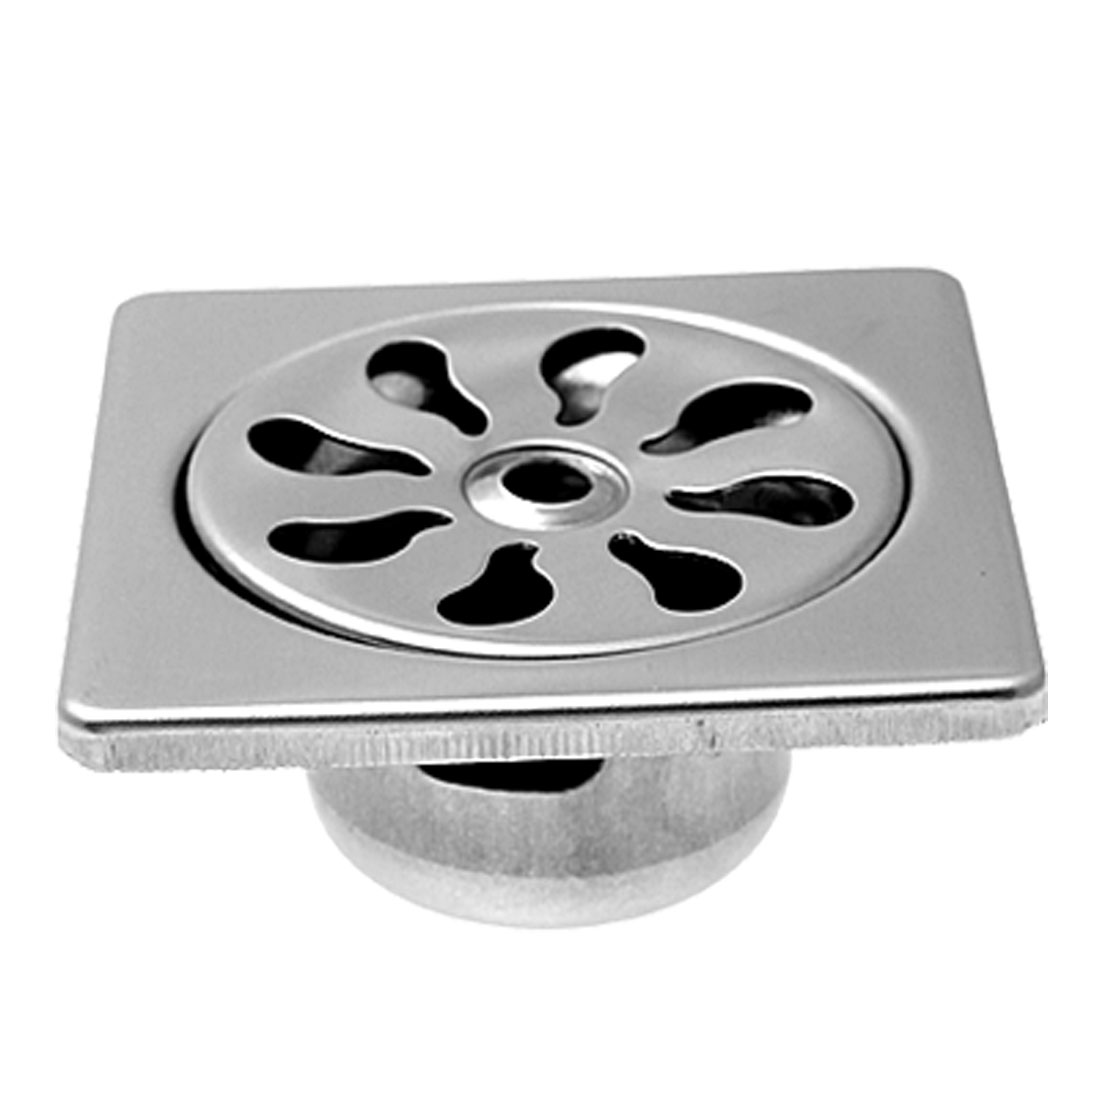 "2"" Stainless Steel Floor Drain Strainer Cover Kitchen Bathroom Appliance"